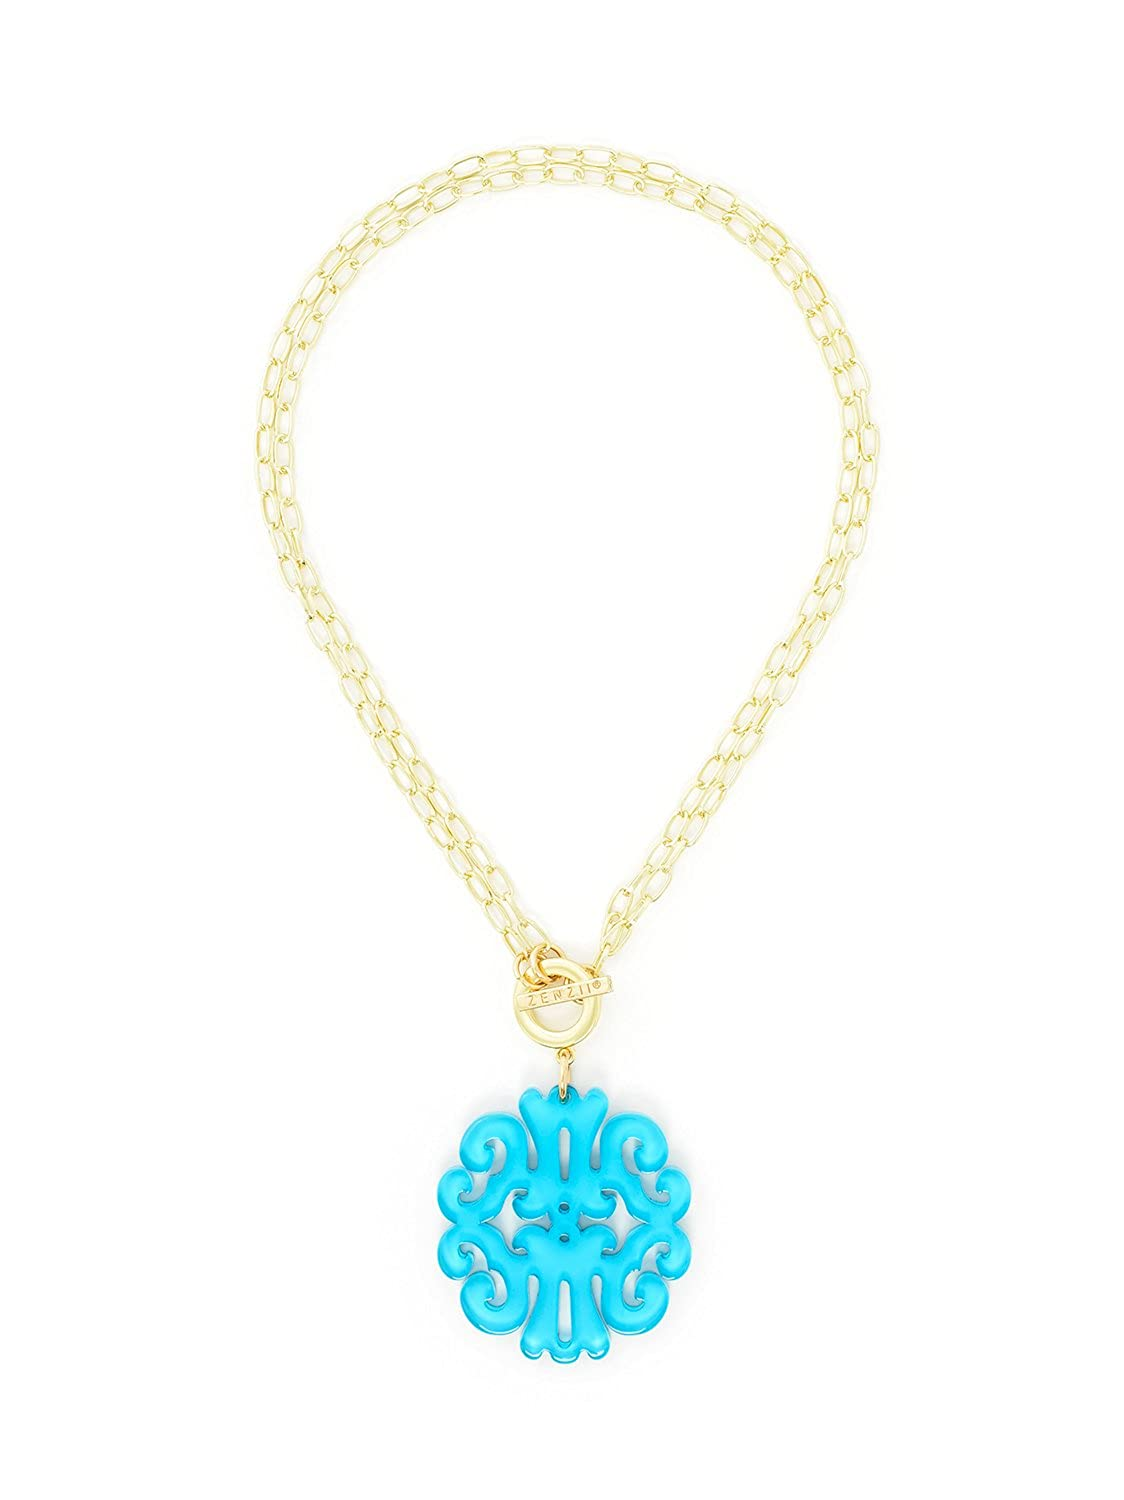 ZENZII Statement Scroll Acrylic Resin Pendant Necklace with Convertible Toggle Chain